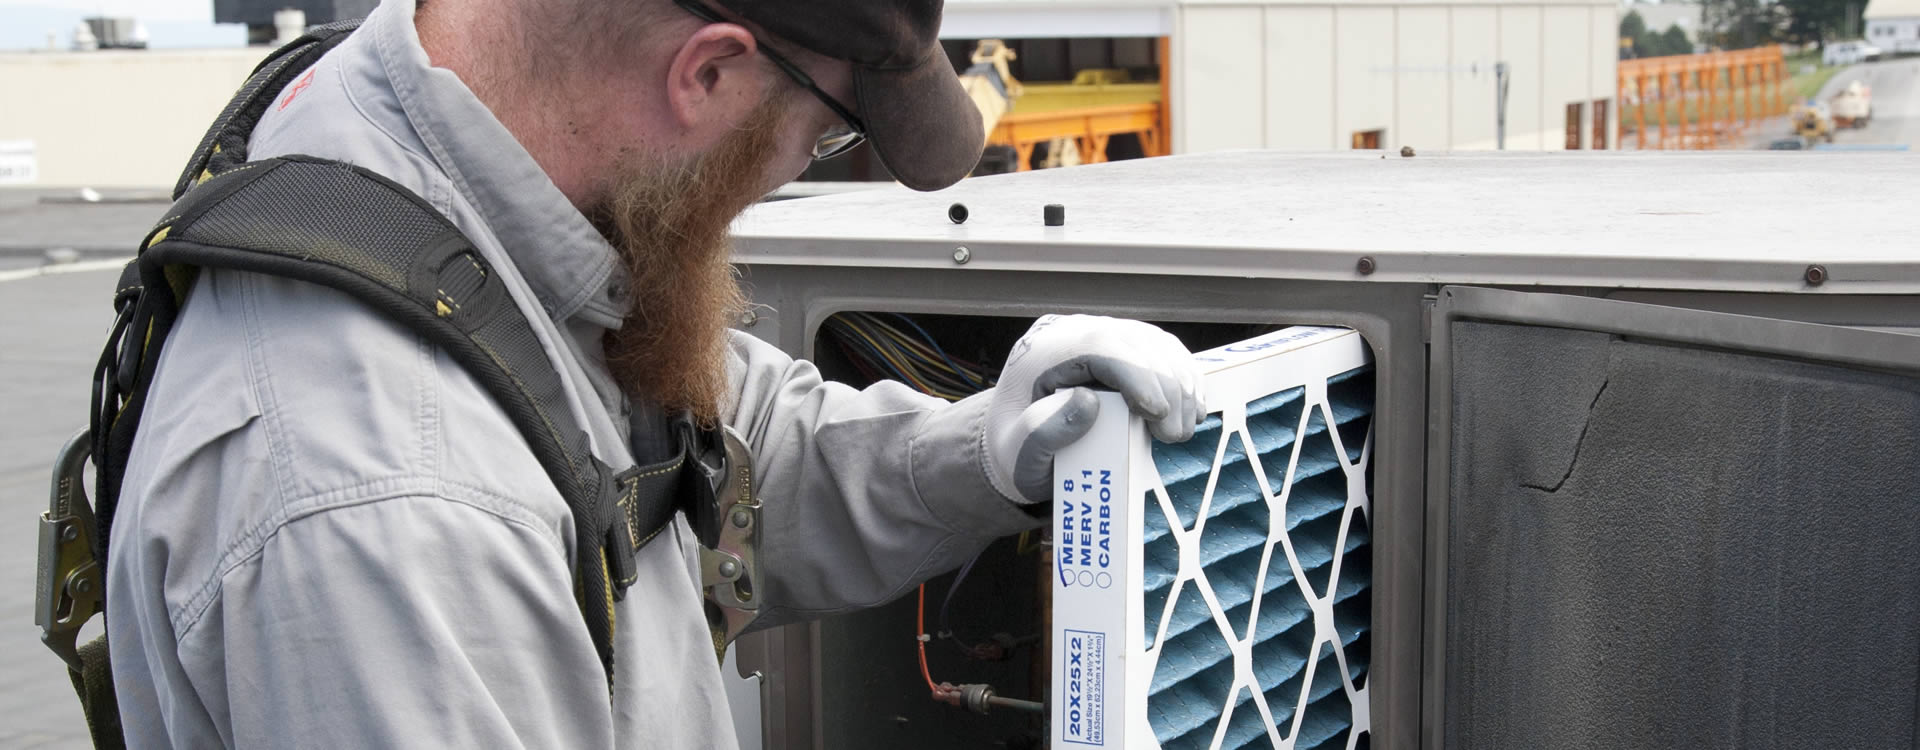 Commercial Hvac Service Repair Amp Installation Contractor